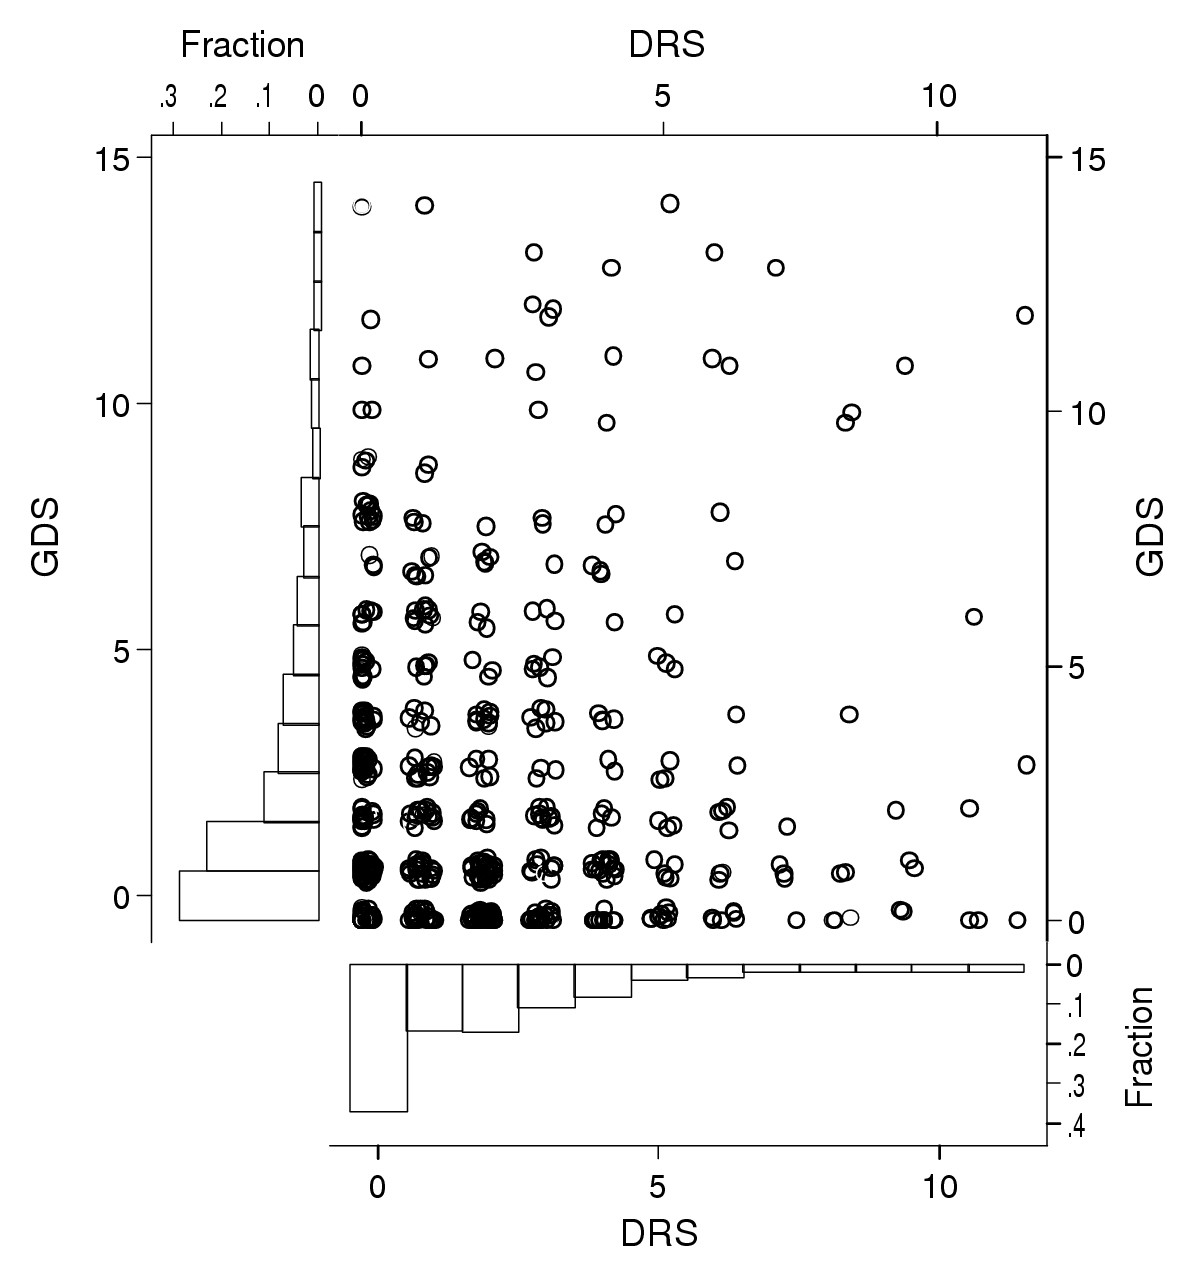 http://static-content.springer.com/image/art%3A10.1186%2F1471-2318-5-1/MediaObjects/12877_2004_Article_29_Fig1_HTML.jpg